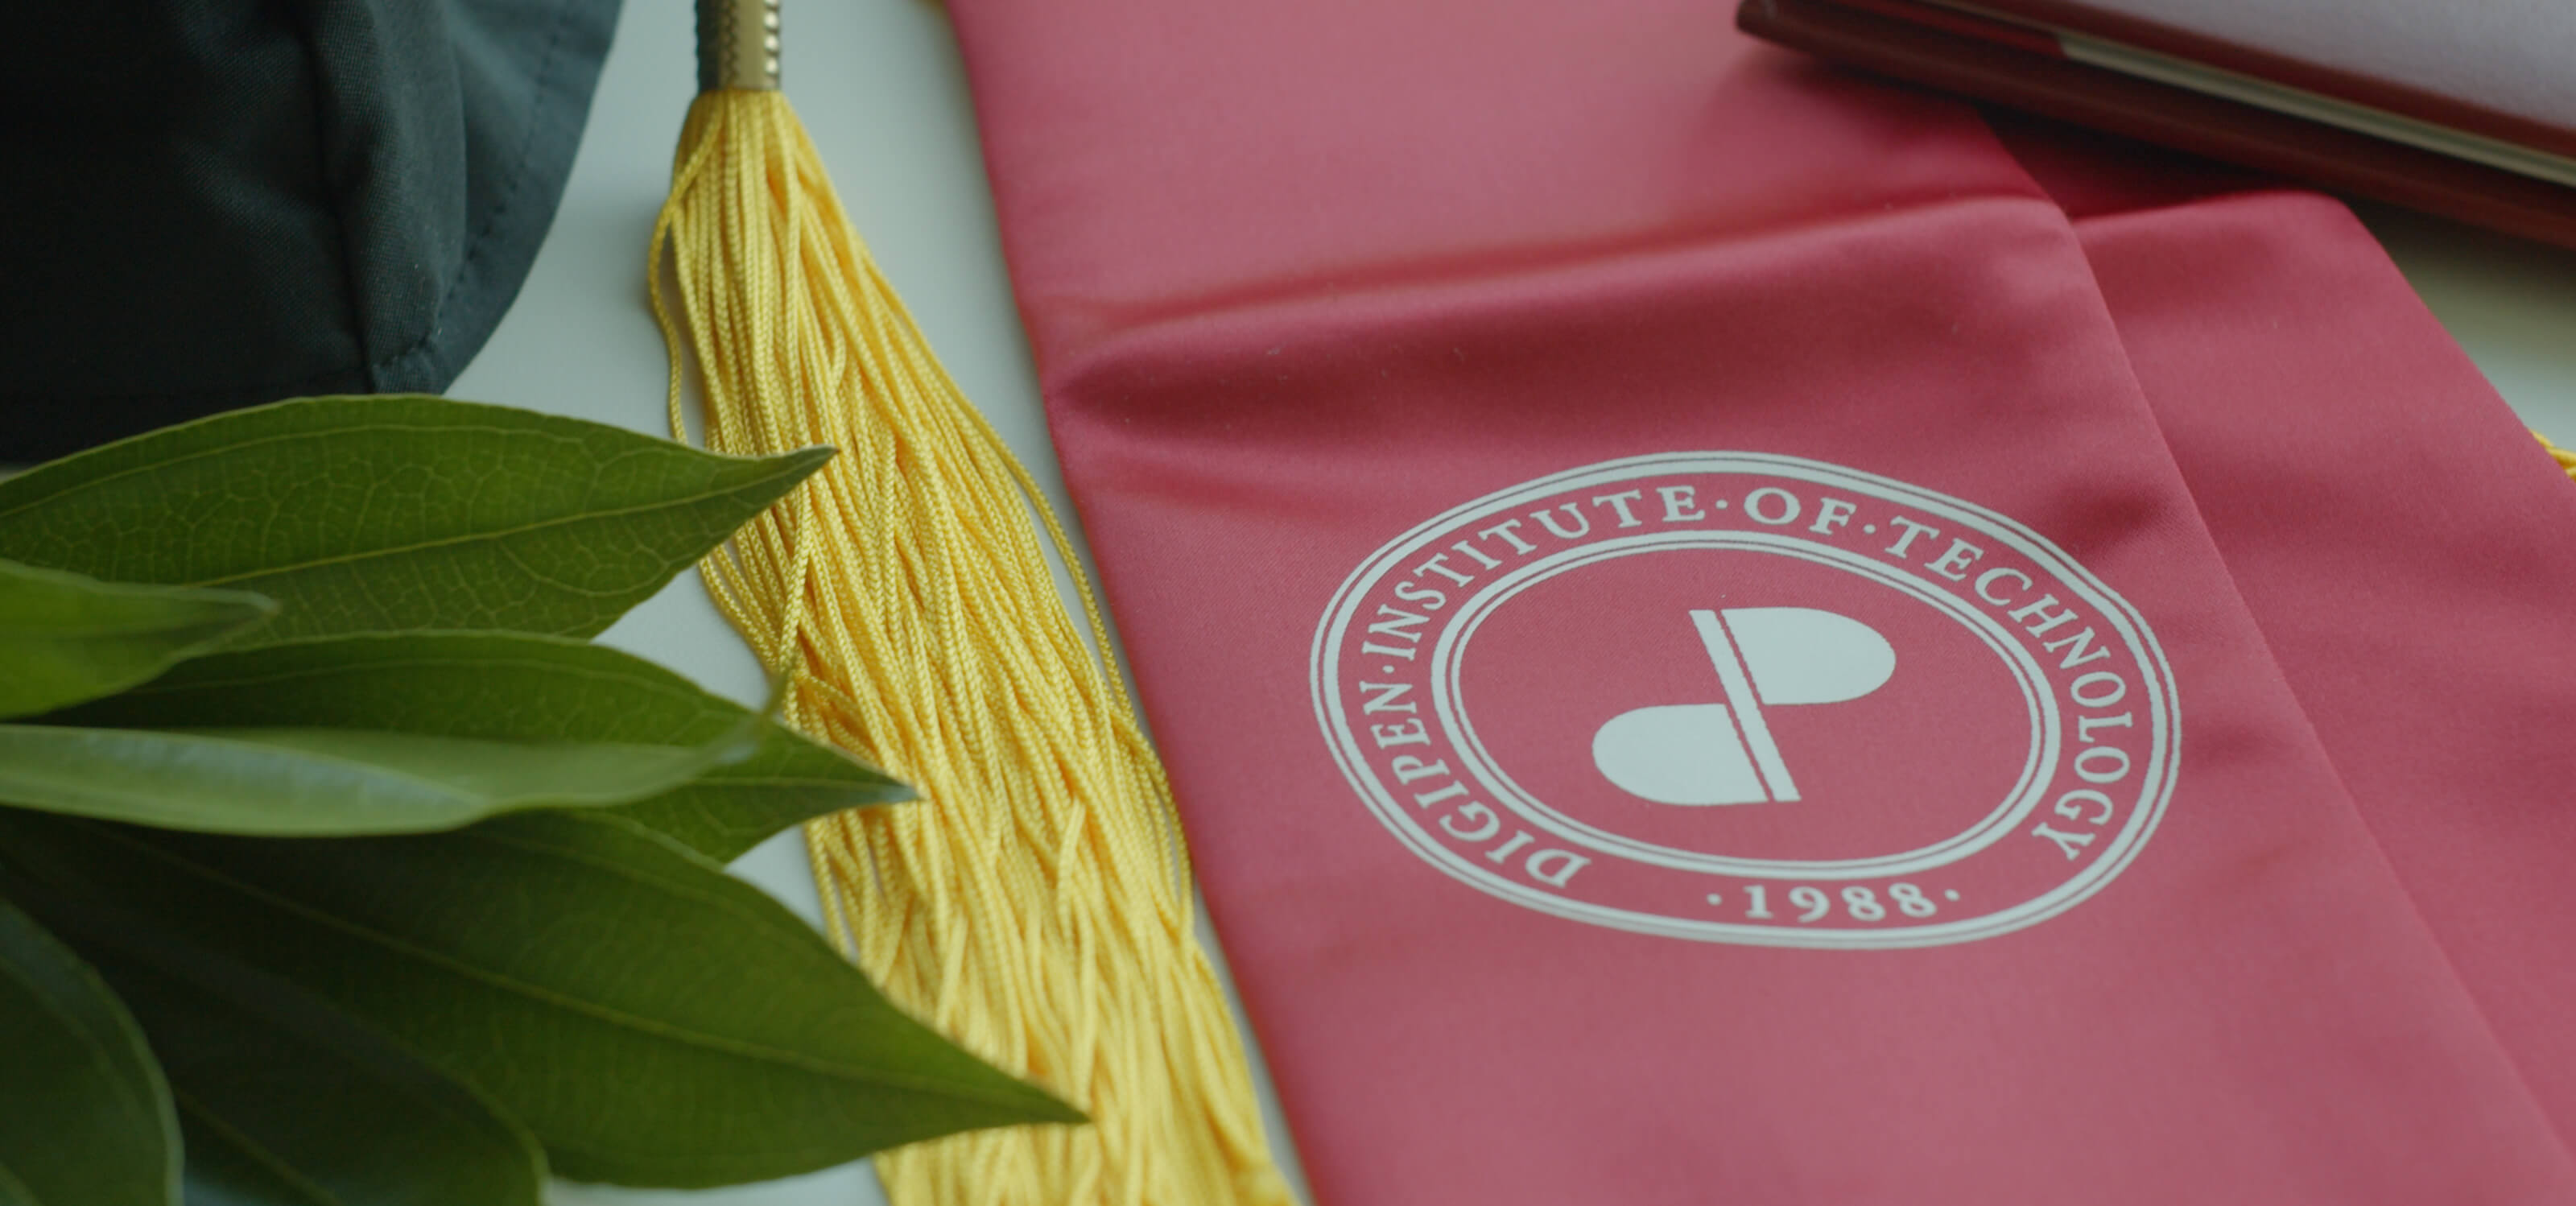 Red DigiPen graduation sash with a yellow tassel next to it